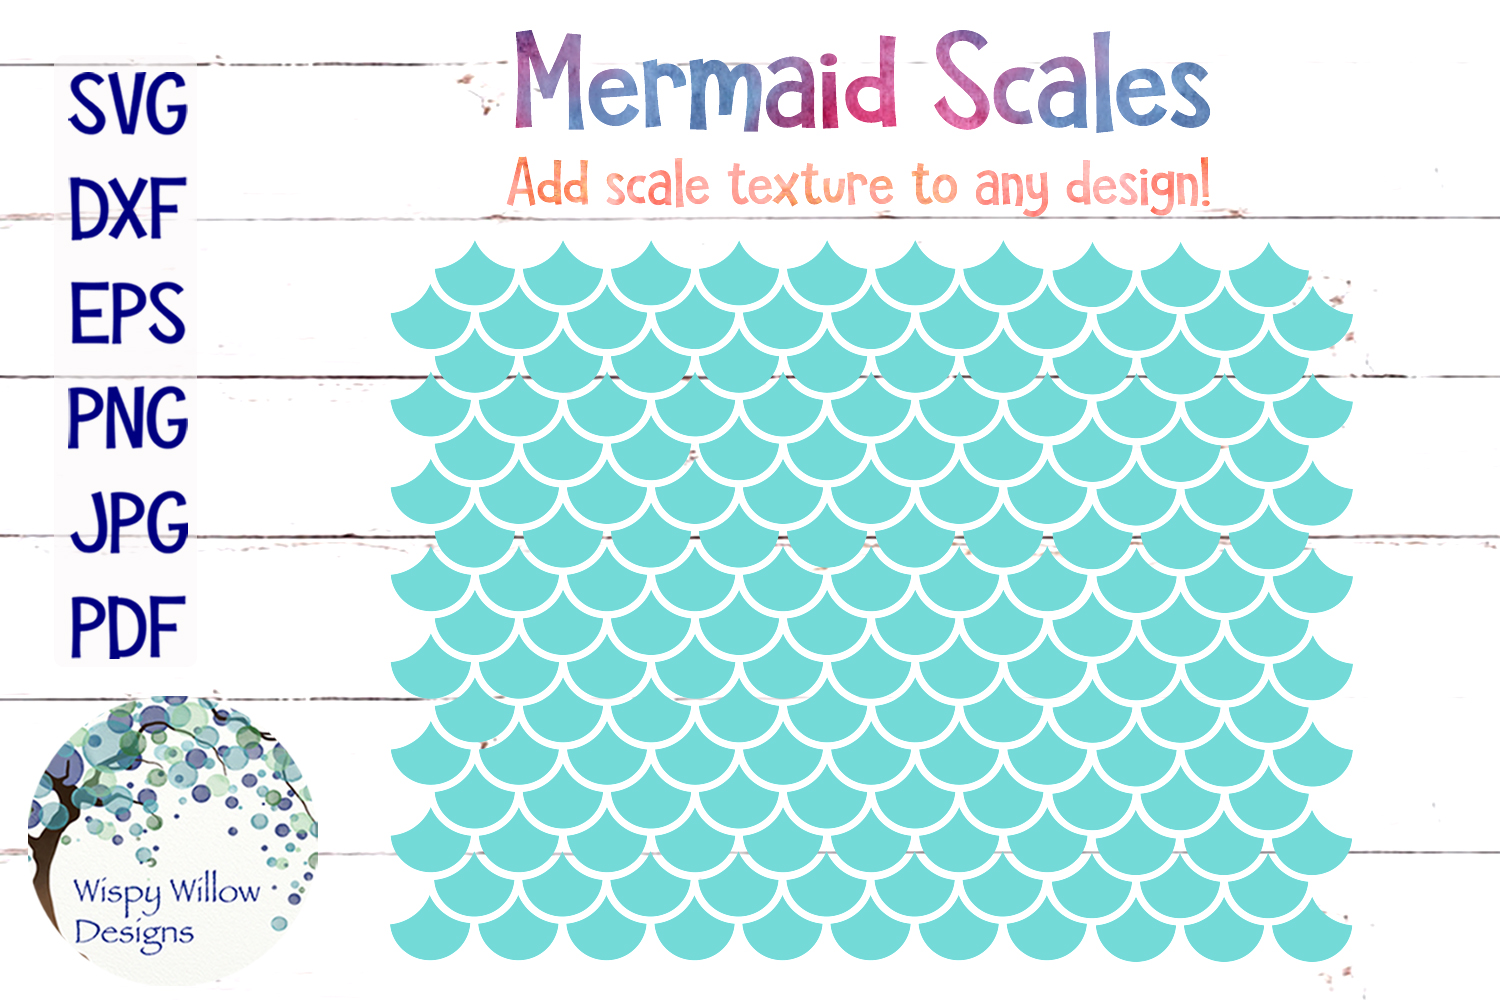 mermaid scales svg free #987, Download drawings